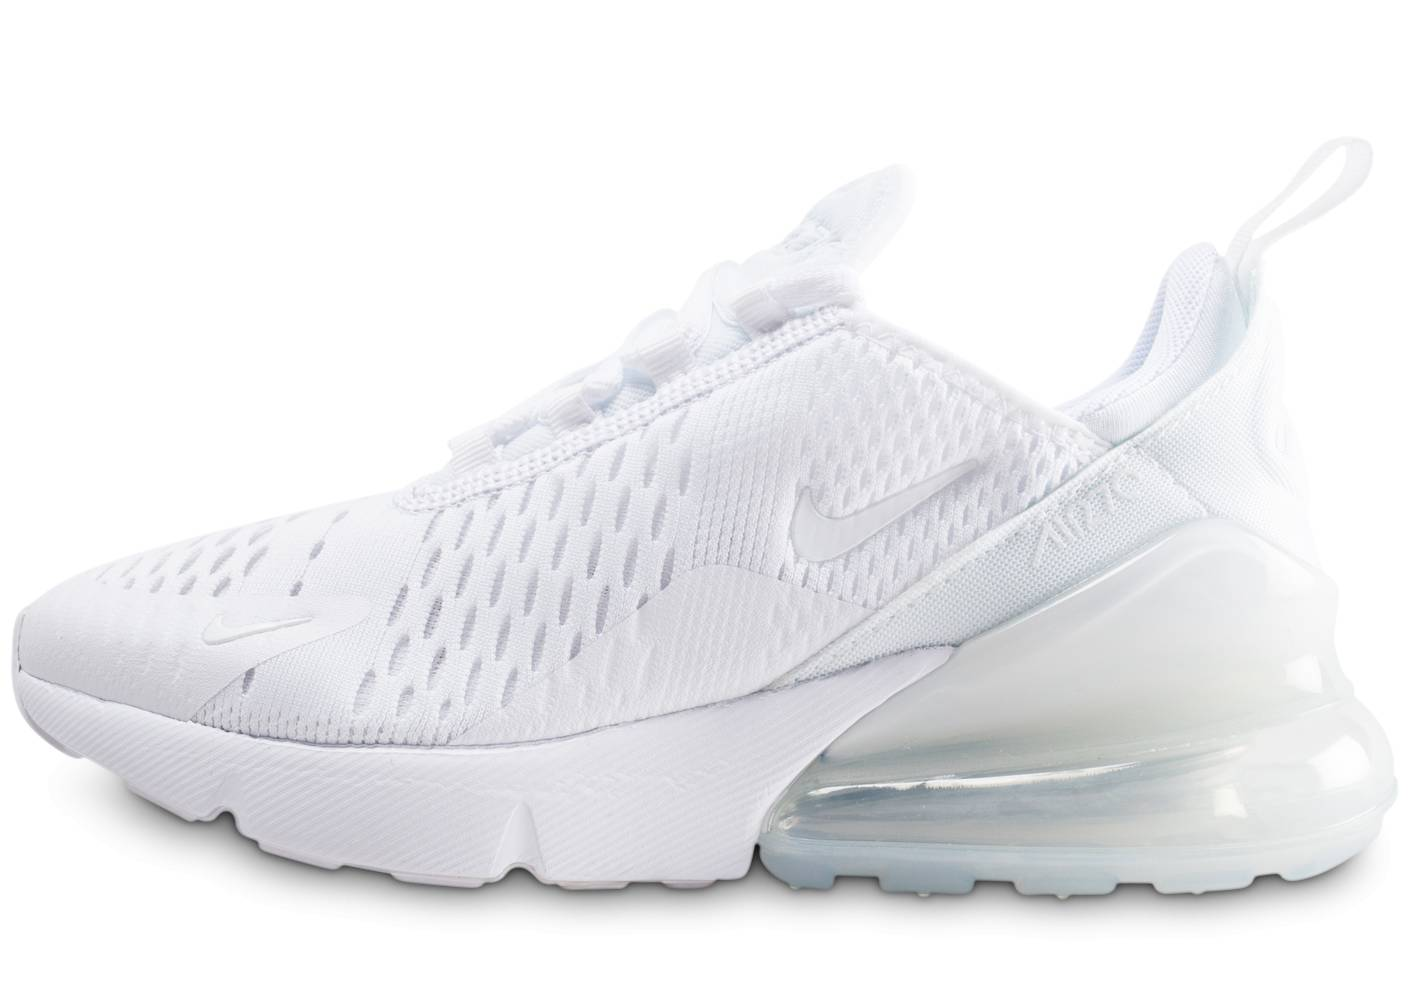 Nike Enfant Air Max 270 Blanche Et Argent Junior Baskets 35 1/2